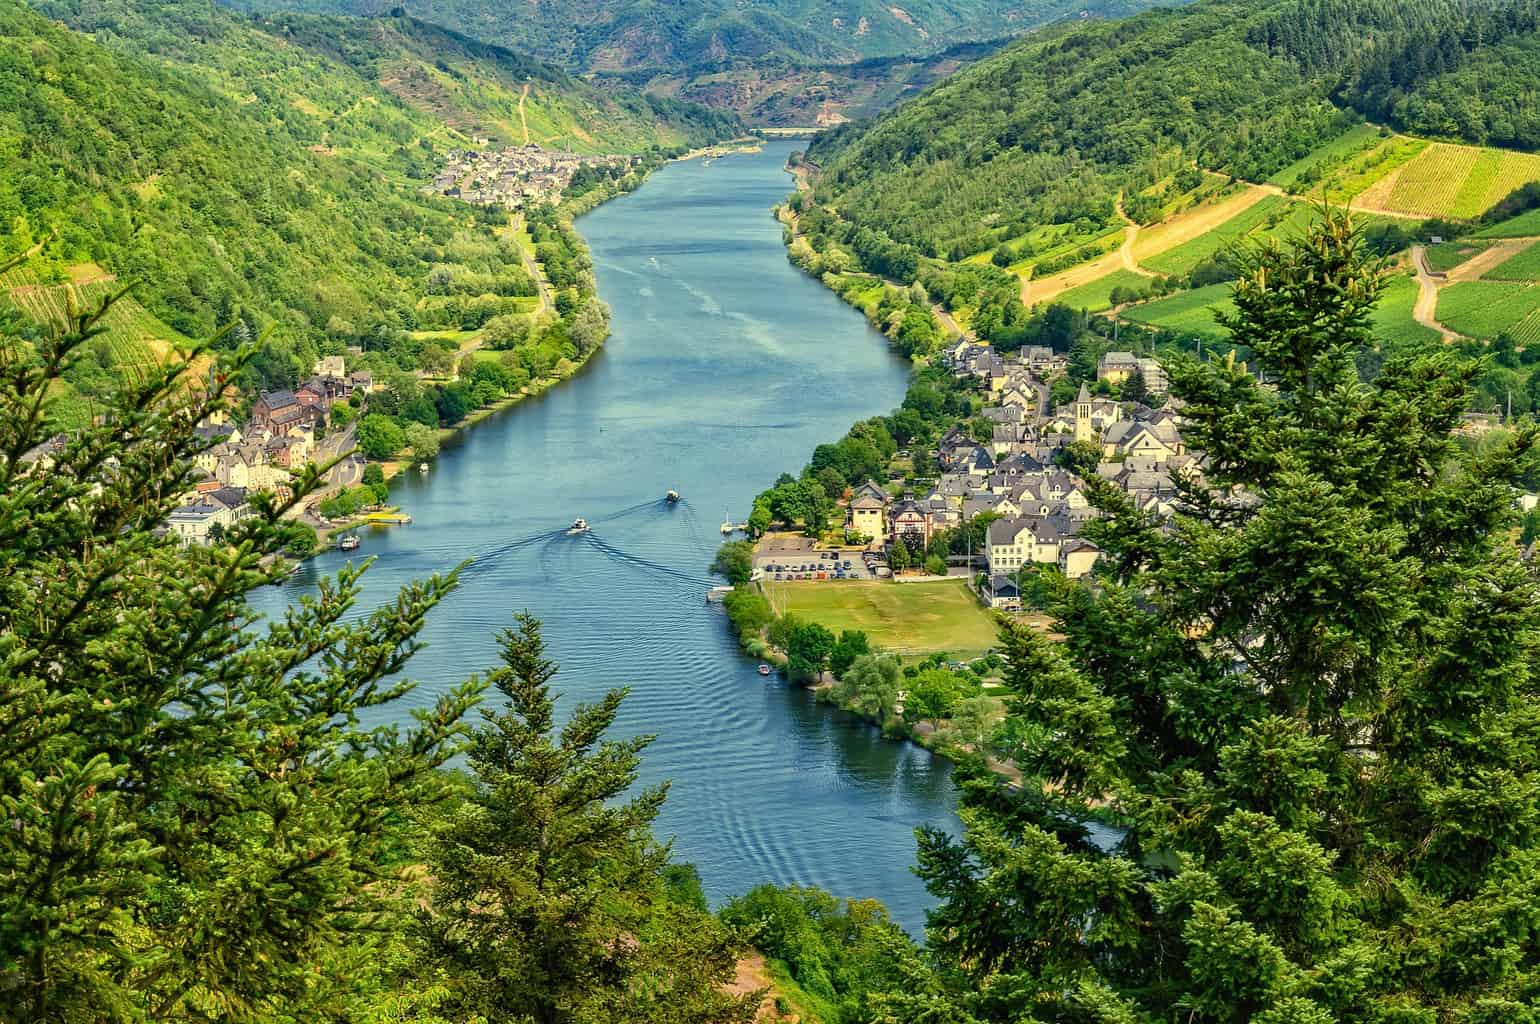 Germany off the beaten path: 13 hidden gems in Germany you didn't know existed